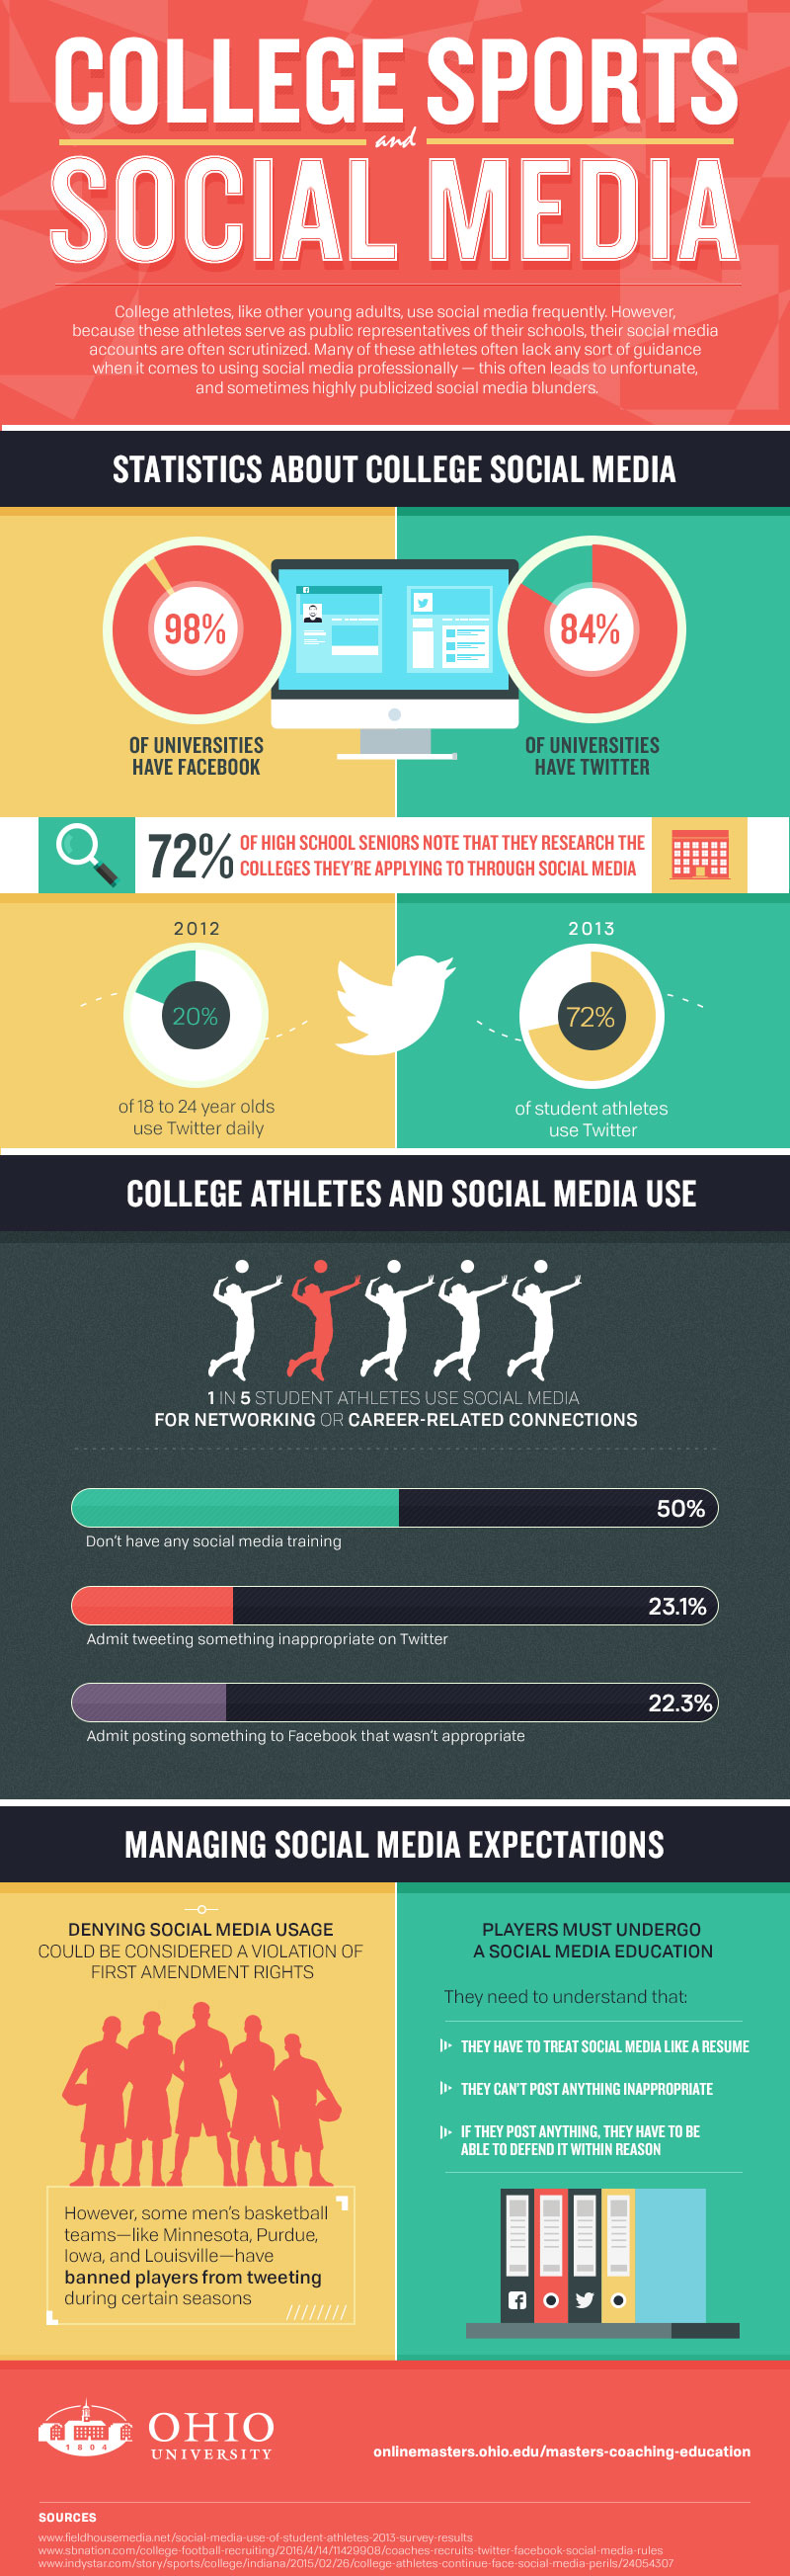 OU-MCE college sports and social media